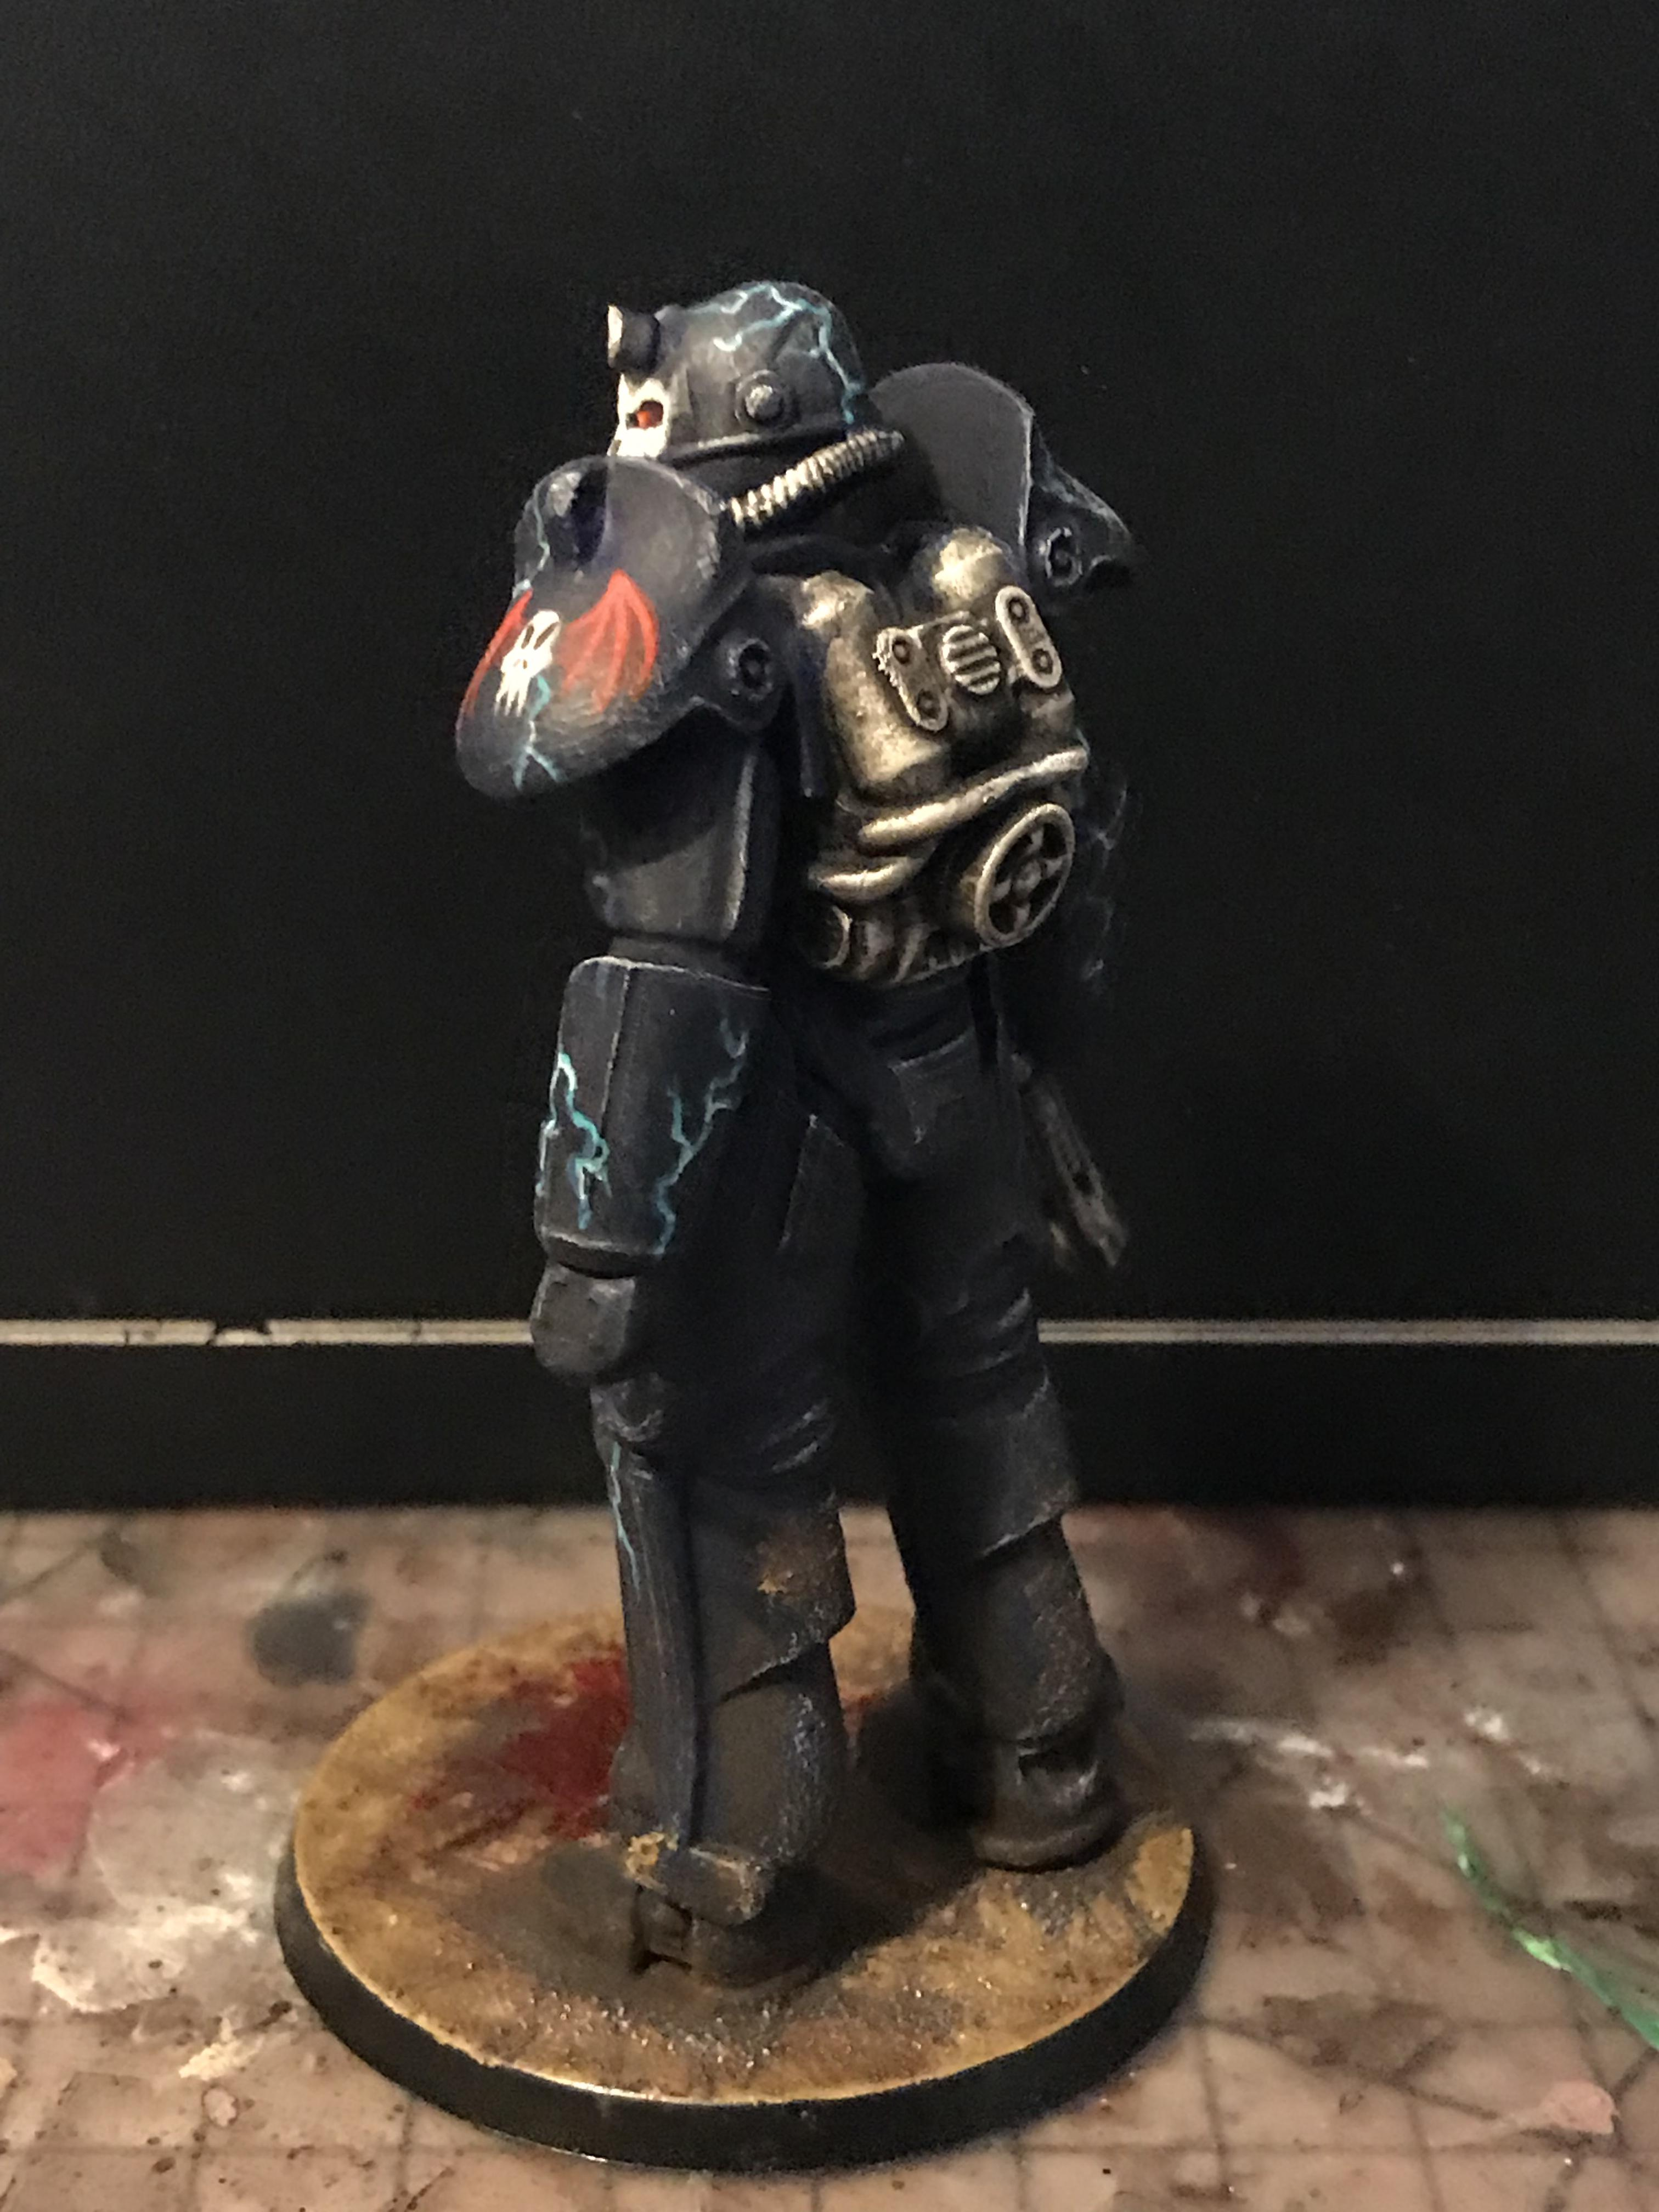 Armor, Army, Assault, Astardes, Attack, Black, Blood, Brotherhood, Chaos, Chosen, Conversion, Corrupted, Crimson, Curze, Death, Evil, Fallout, Fast, Flayed, Flayer, Flesh, Green, Grisly, Hand, Heresy, Heretic, Horrors, Horus, Kaos, Kill, Killers, Kit Bash, Konrad, Legion, Legionnaire, Legionnaires, Legionnes, Legions, Lightning, Lord, Lords, Man, Mask, Murder, Murderers, Night, Night Lords, Of, Pained, Pirate, Pirates, Power, Primarch, Rage, Raiders, Raptors, Reaver, Reavers, Red, Renegade, Renegades, Retinue, Saboteur, Sculpting, Shadow, Shroud, Skin, Soul, Space, Space Marines, Stalkers, Stealth, Steel, Stuff, Tactics, Team, Terror, Torture, Traitor, Traitors, Troops, Trophies, Twisted, Veteran, Vile, Violence, Violent